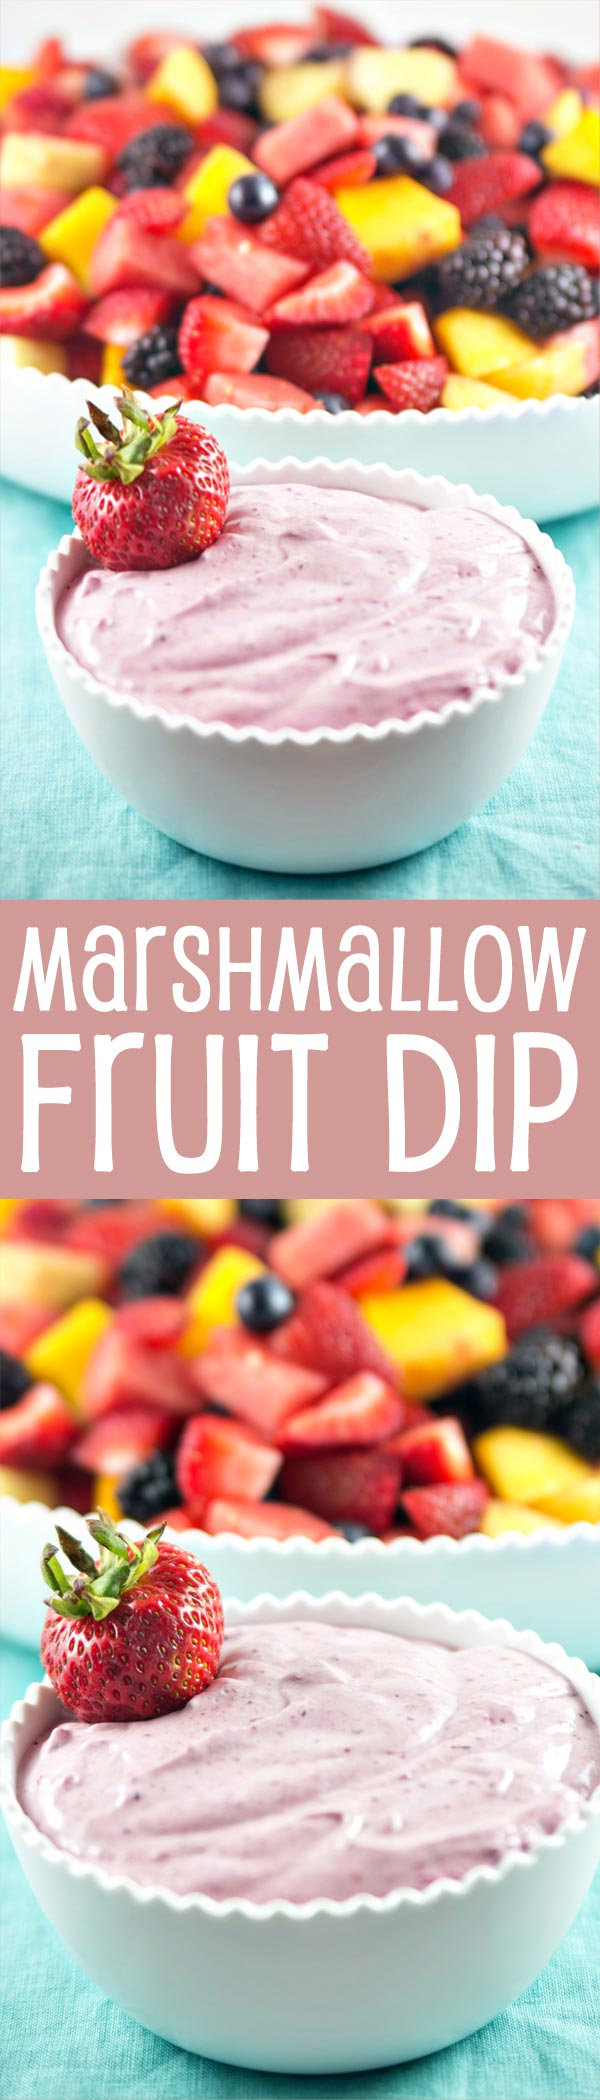 Marshmallow Fruit Dip made with homemade marshmallow fluff and pureed berries. {Bunsen Burner Bakery}